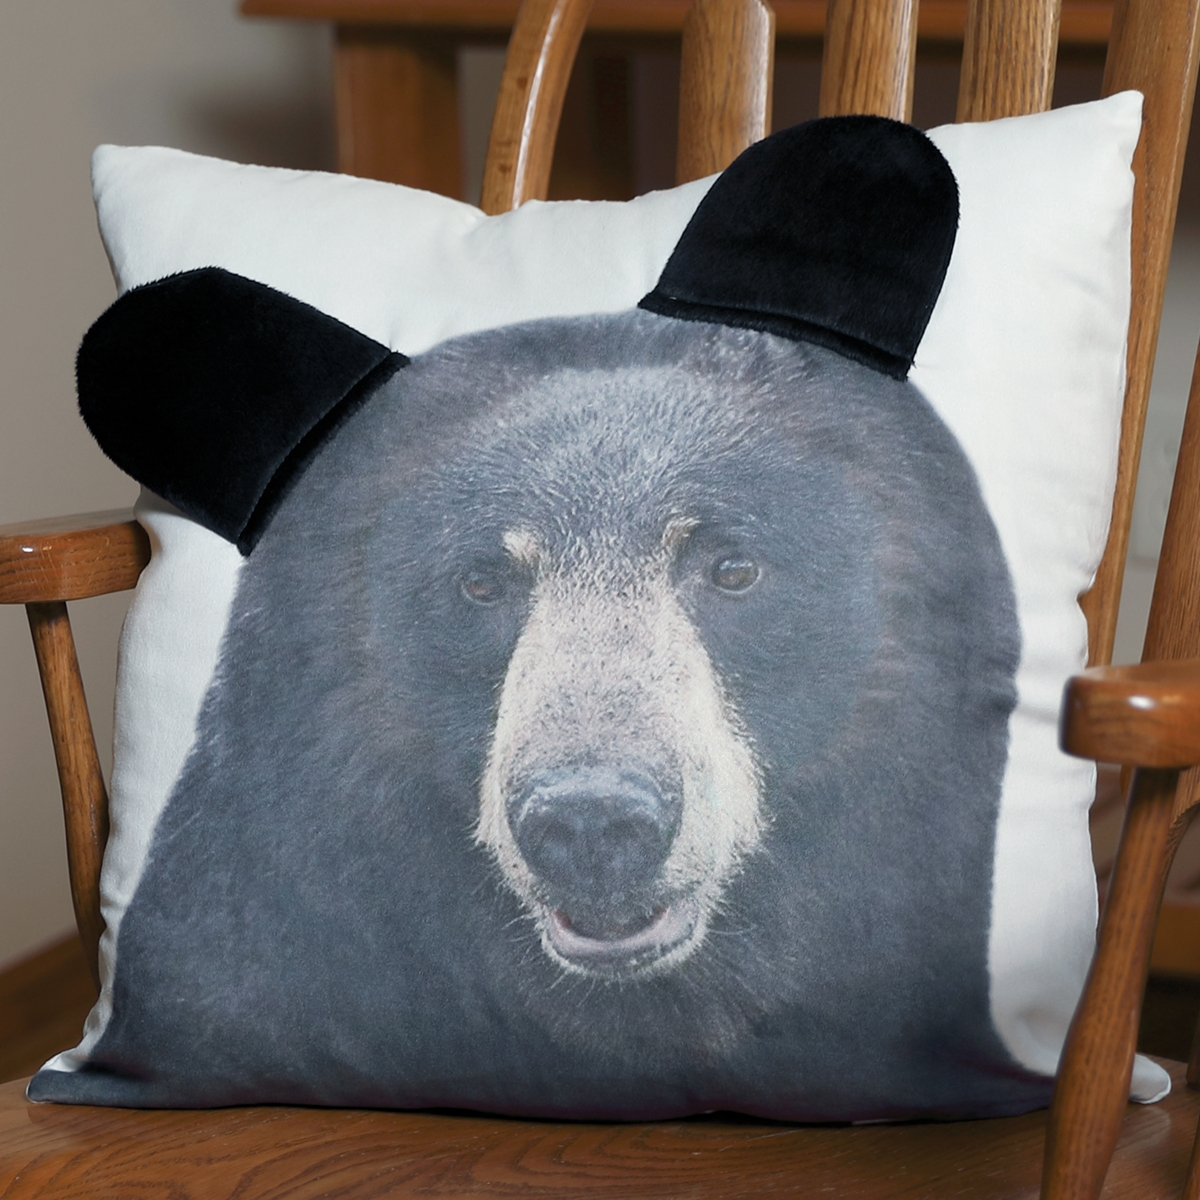 3D Black Bear Pillow